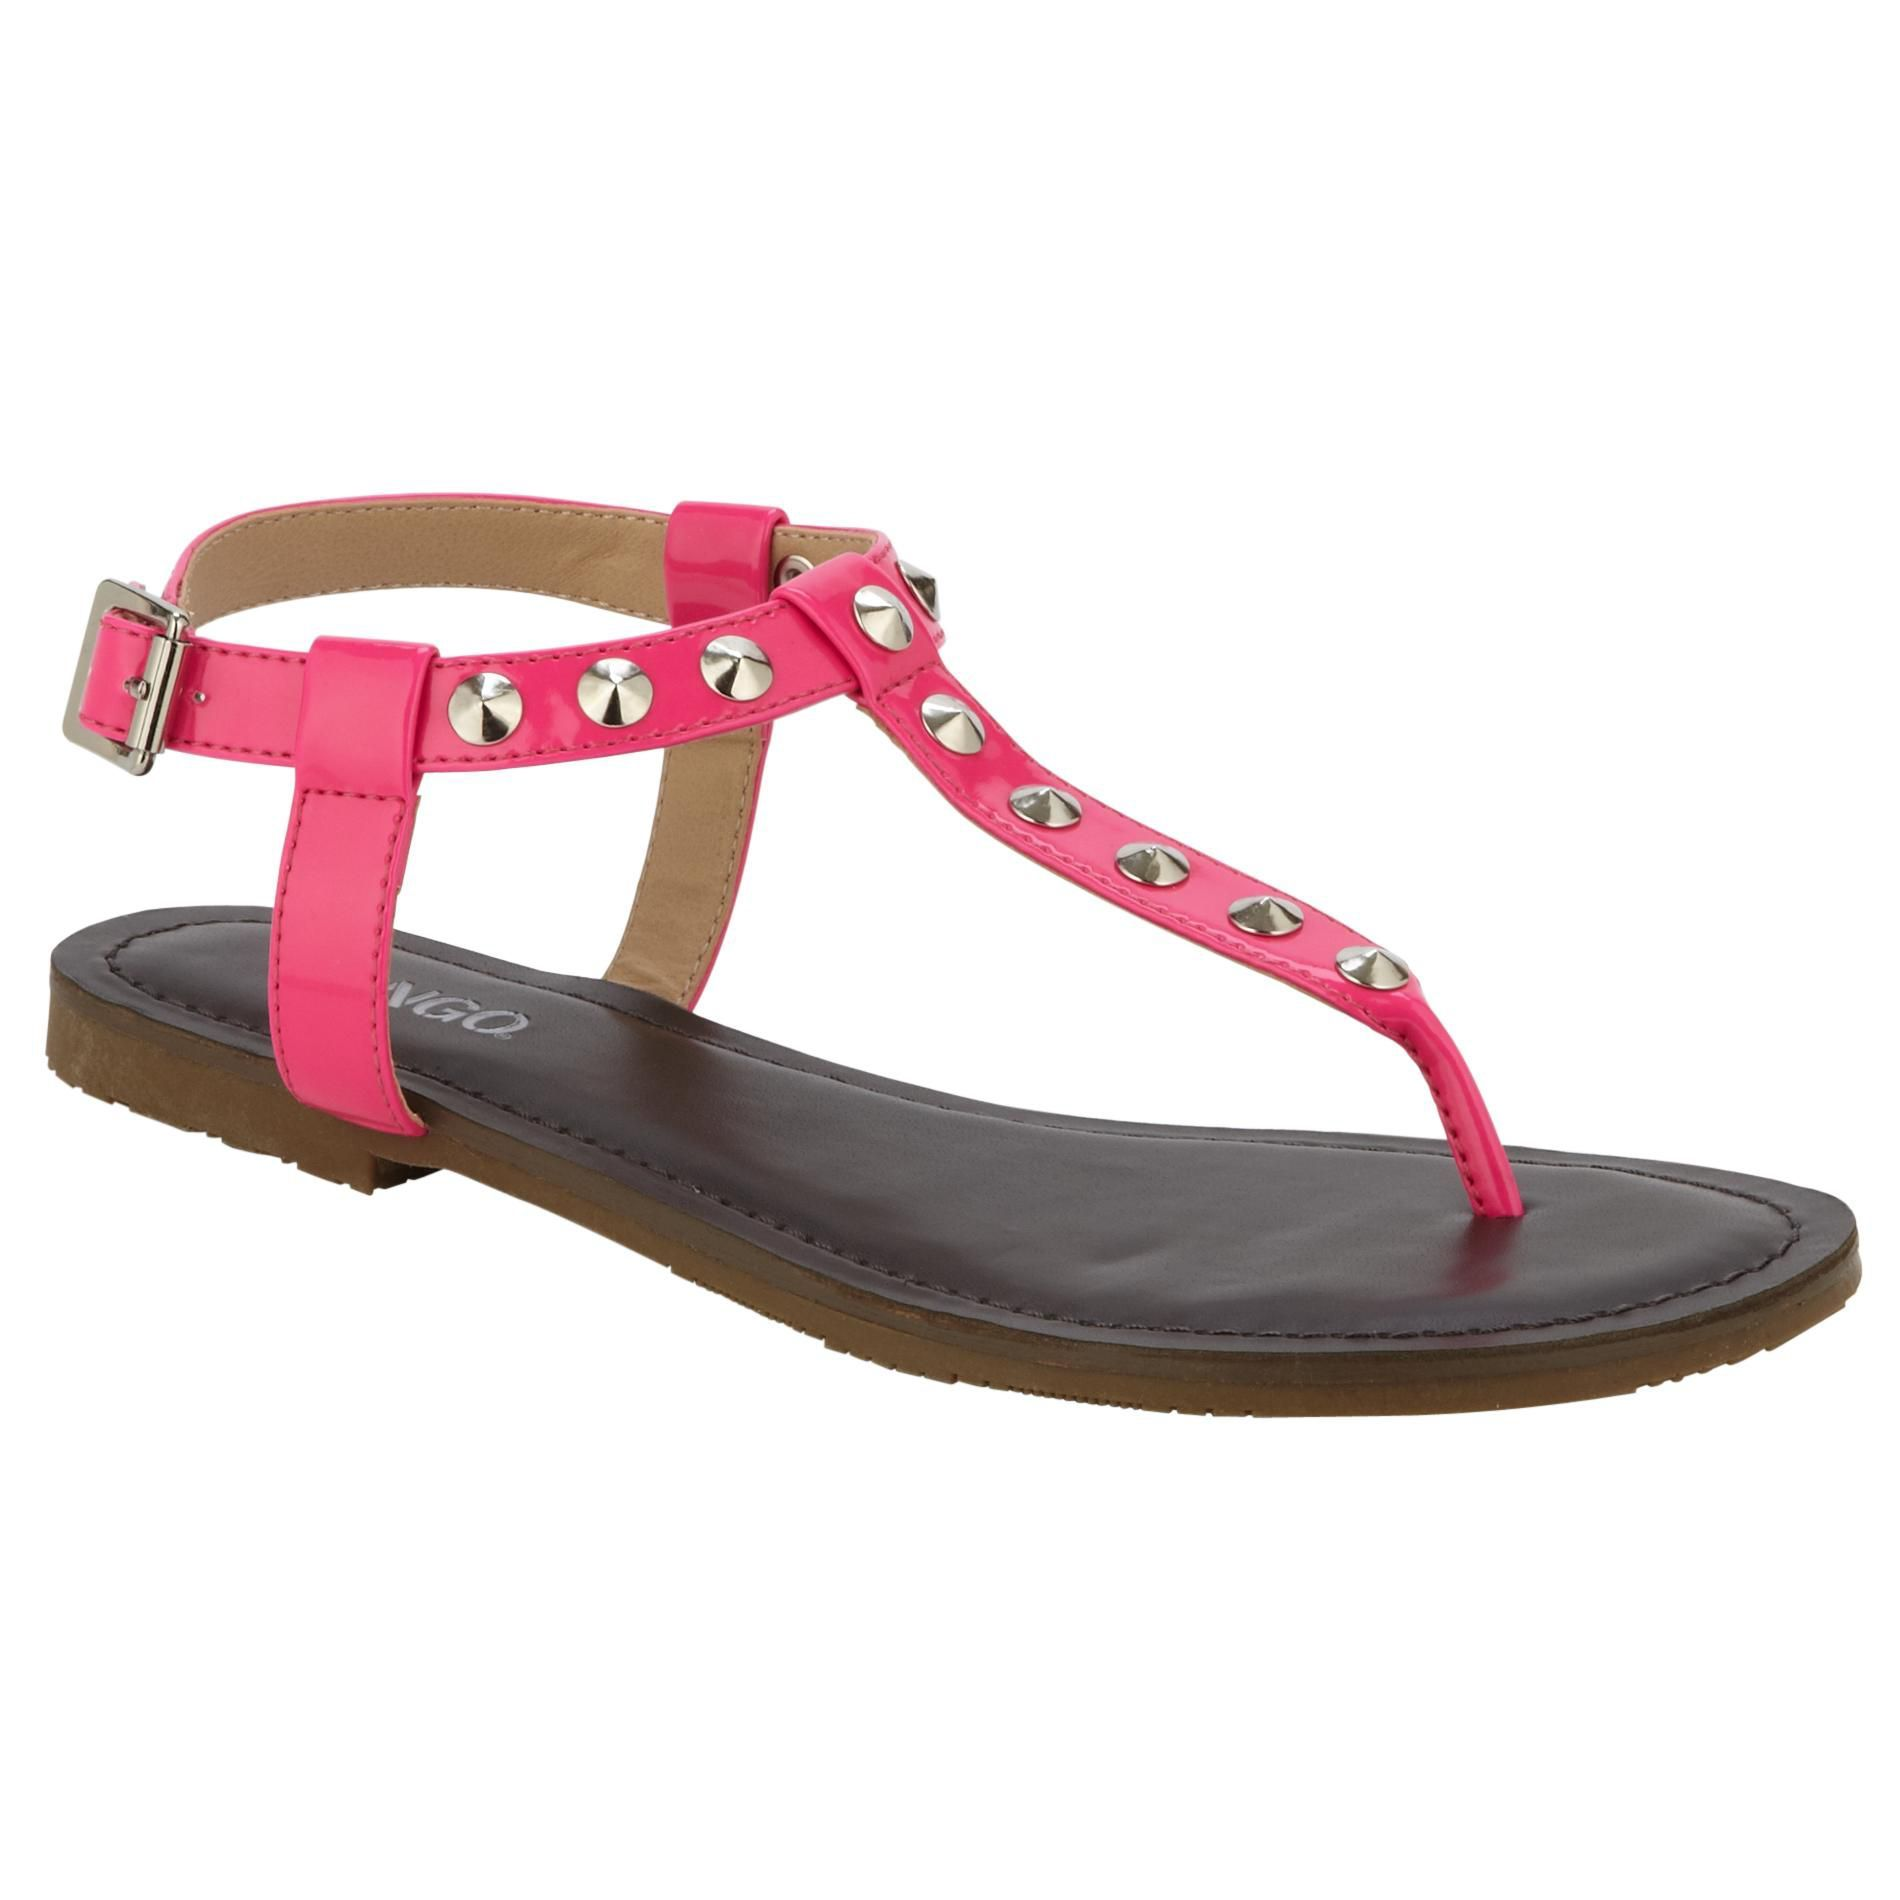 c20c45dc57d women sandals - Google Search